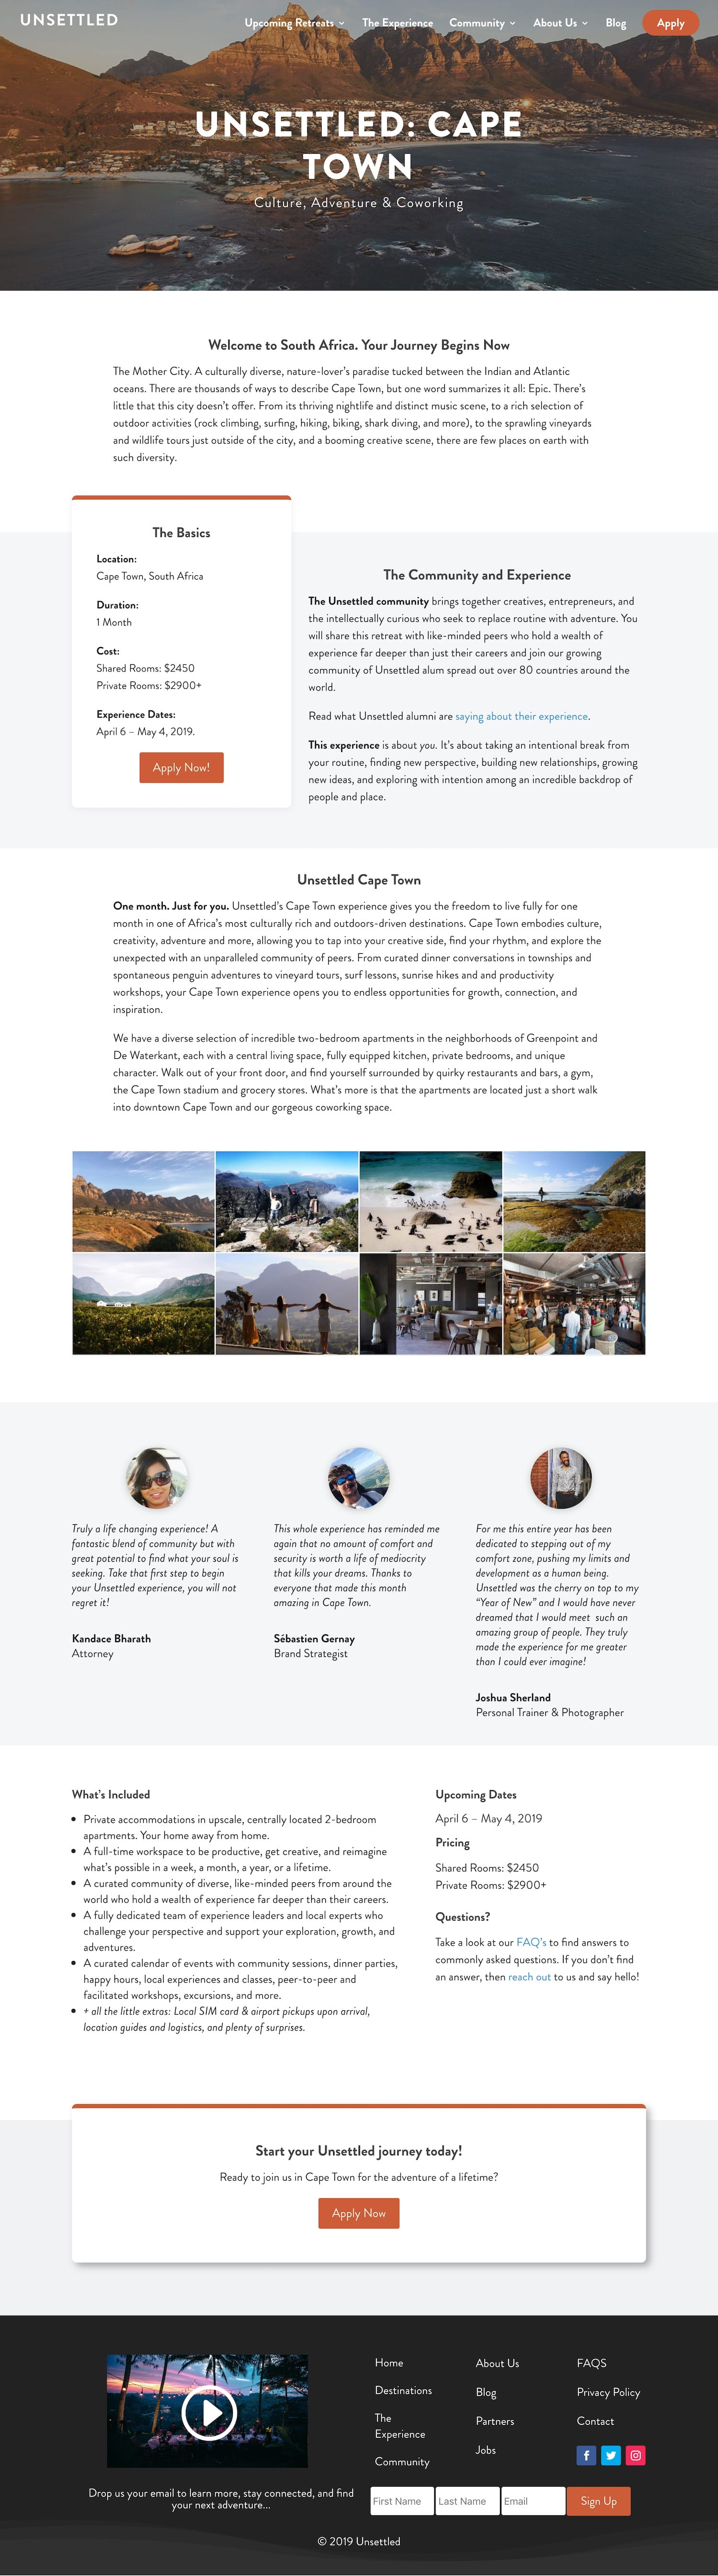 Unsettled Cape Town retreat page showcasing co-working and co-living retreats for community